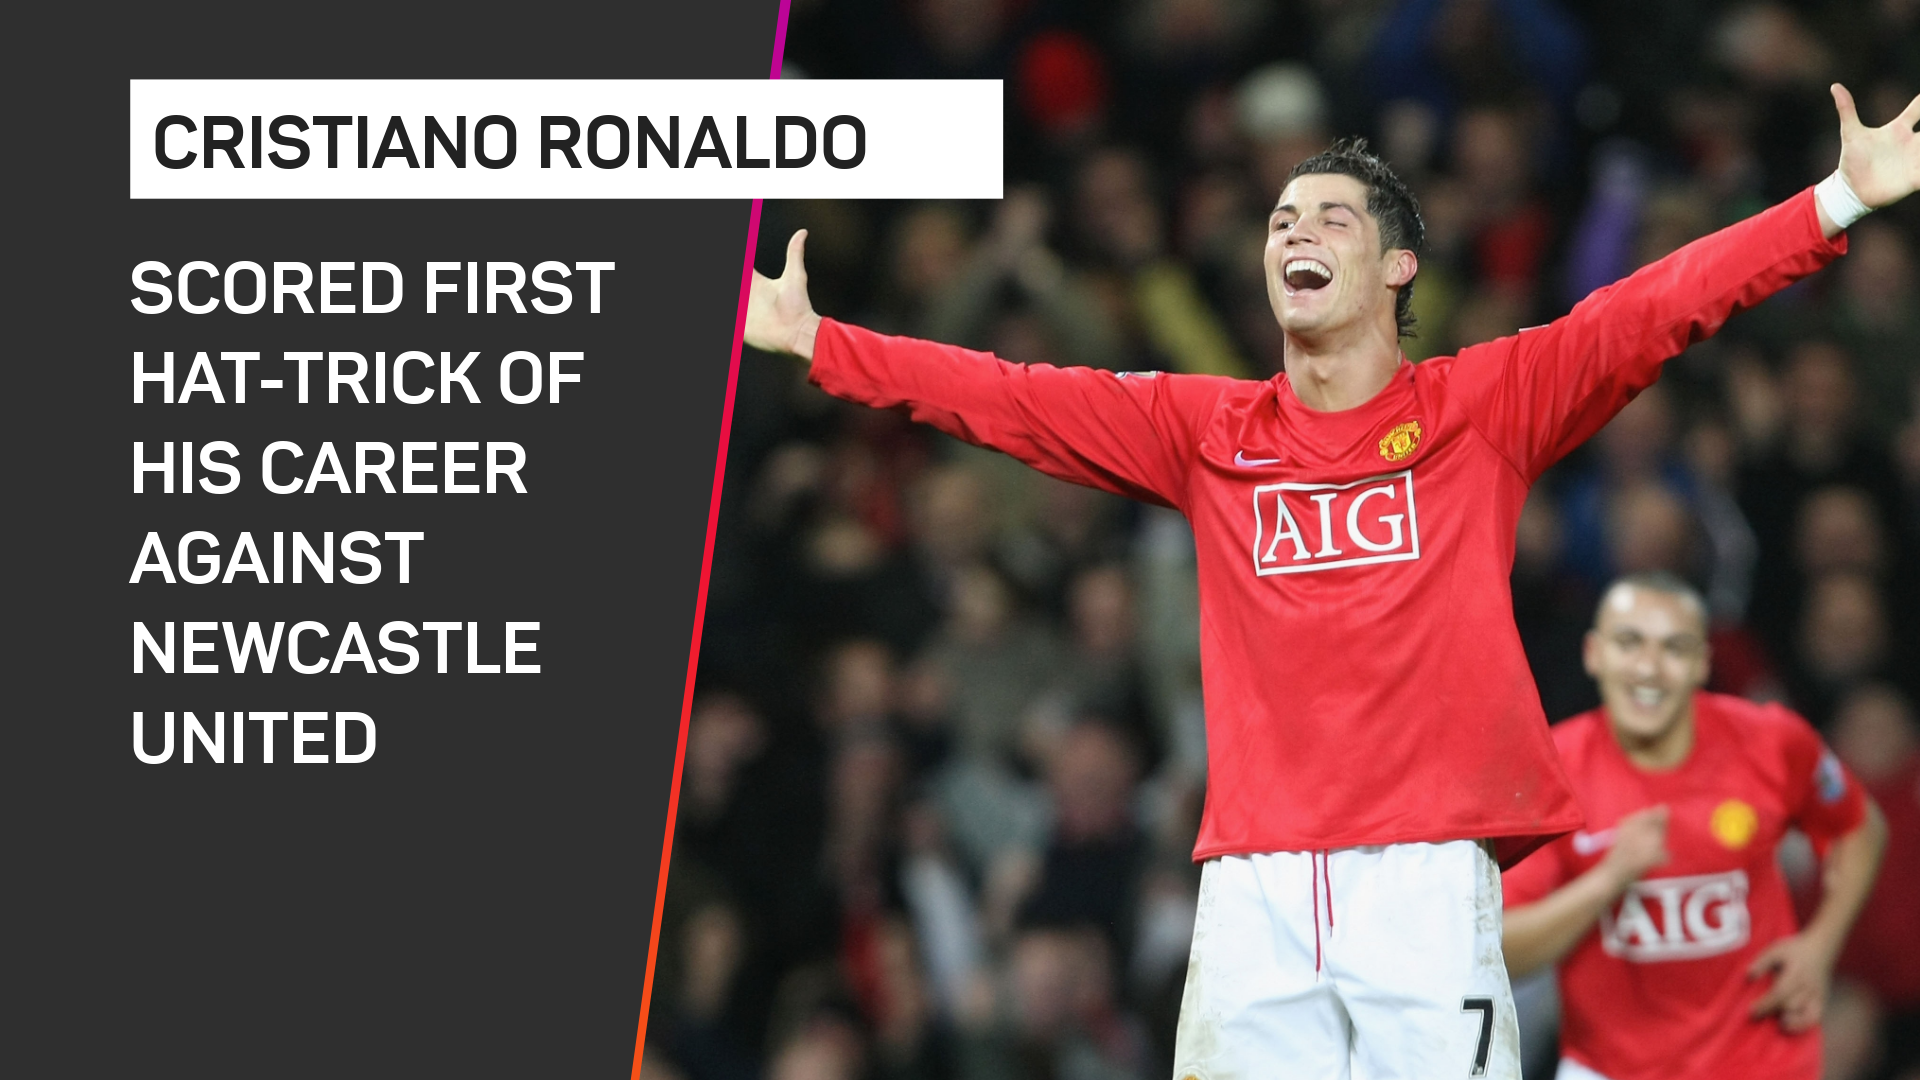 Cristiano Ronaldo scored his first hat-trick against Newcastle United